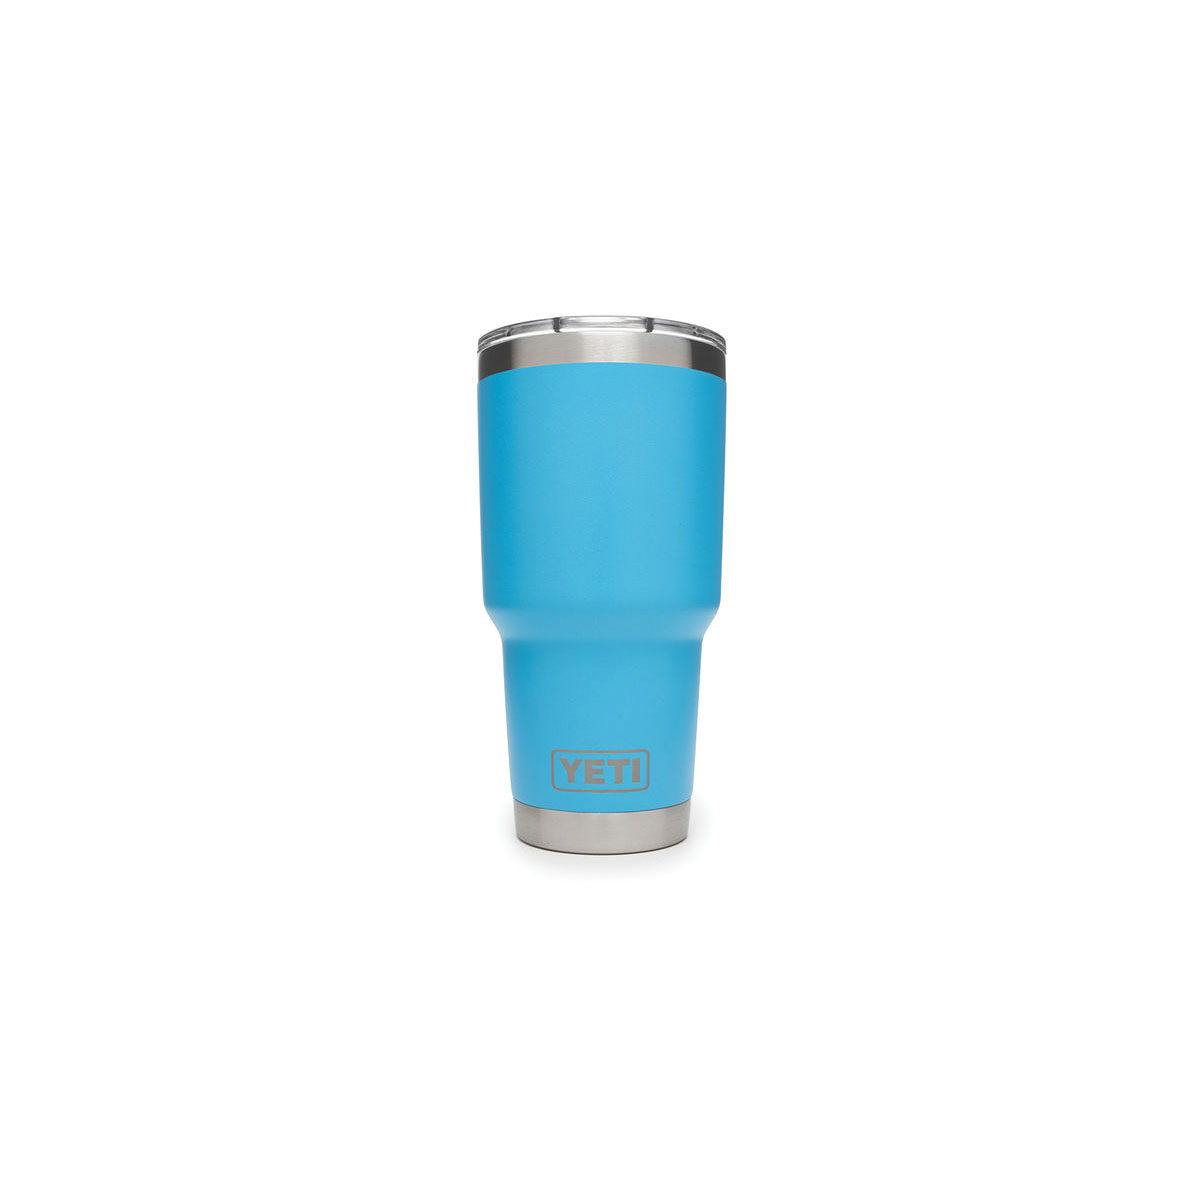 Picture of YETI Rambler 21071500029 Tumbler with Lid, 30 oz Capacity, MagSlider Lid, 18/8 Stainless Steel, Reef Blue